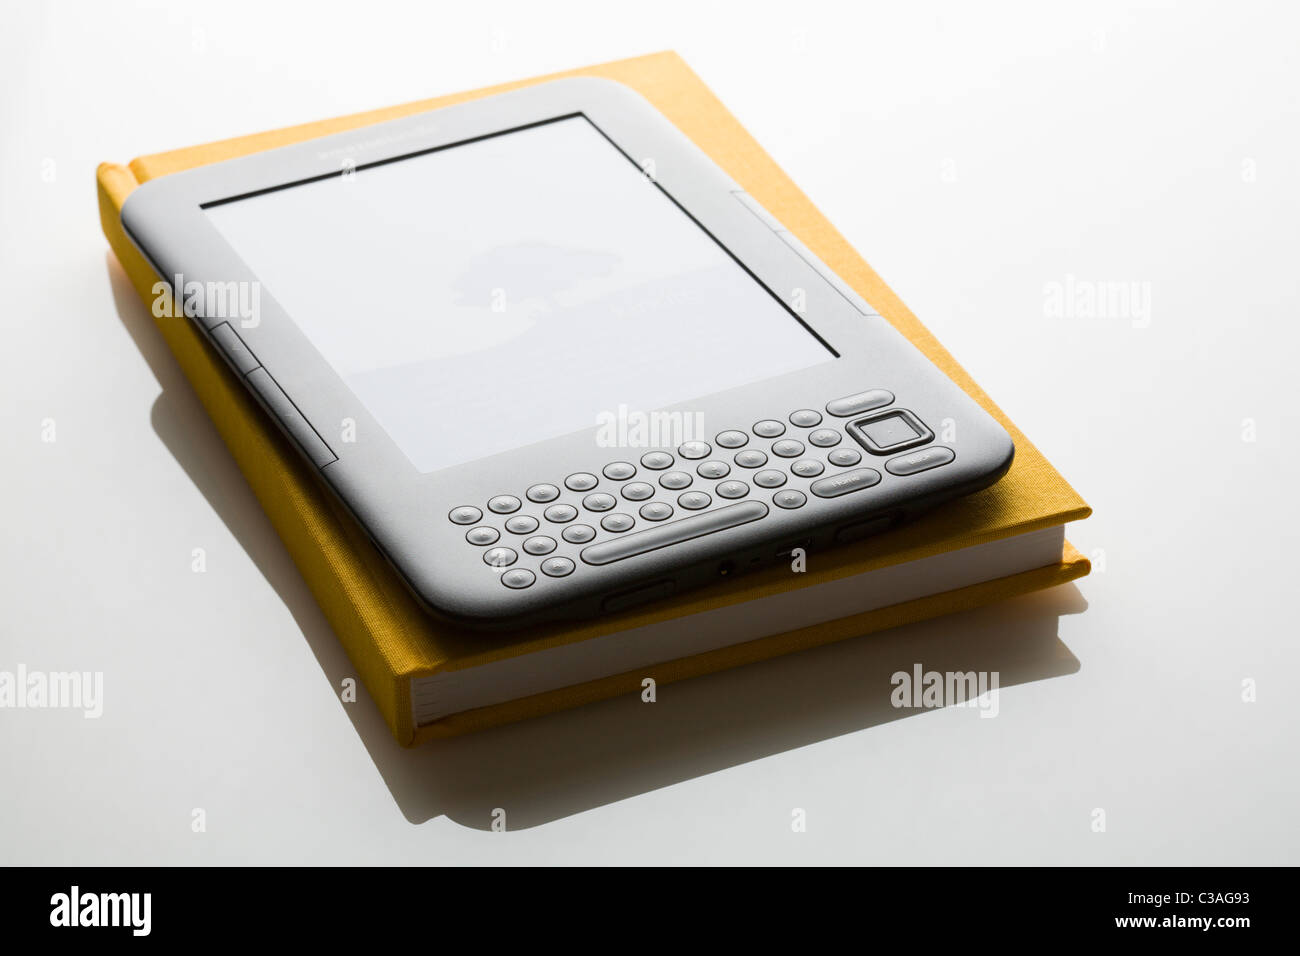 Amazon Kindle ebook reader on traditional book FOR EDITORIAL USE ONLY - Stock Image